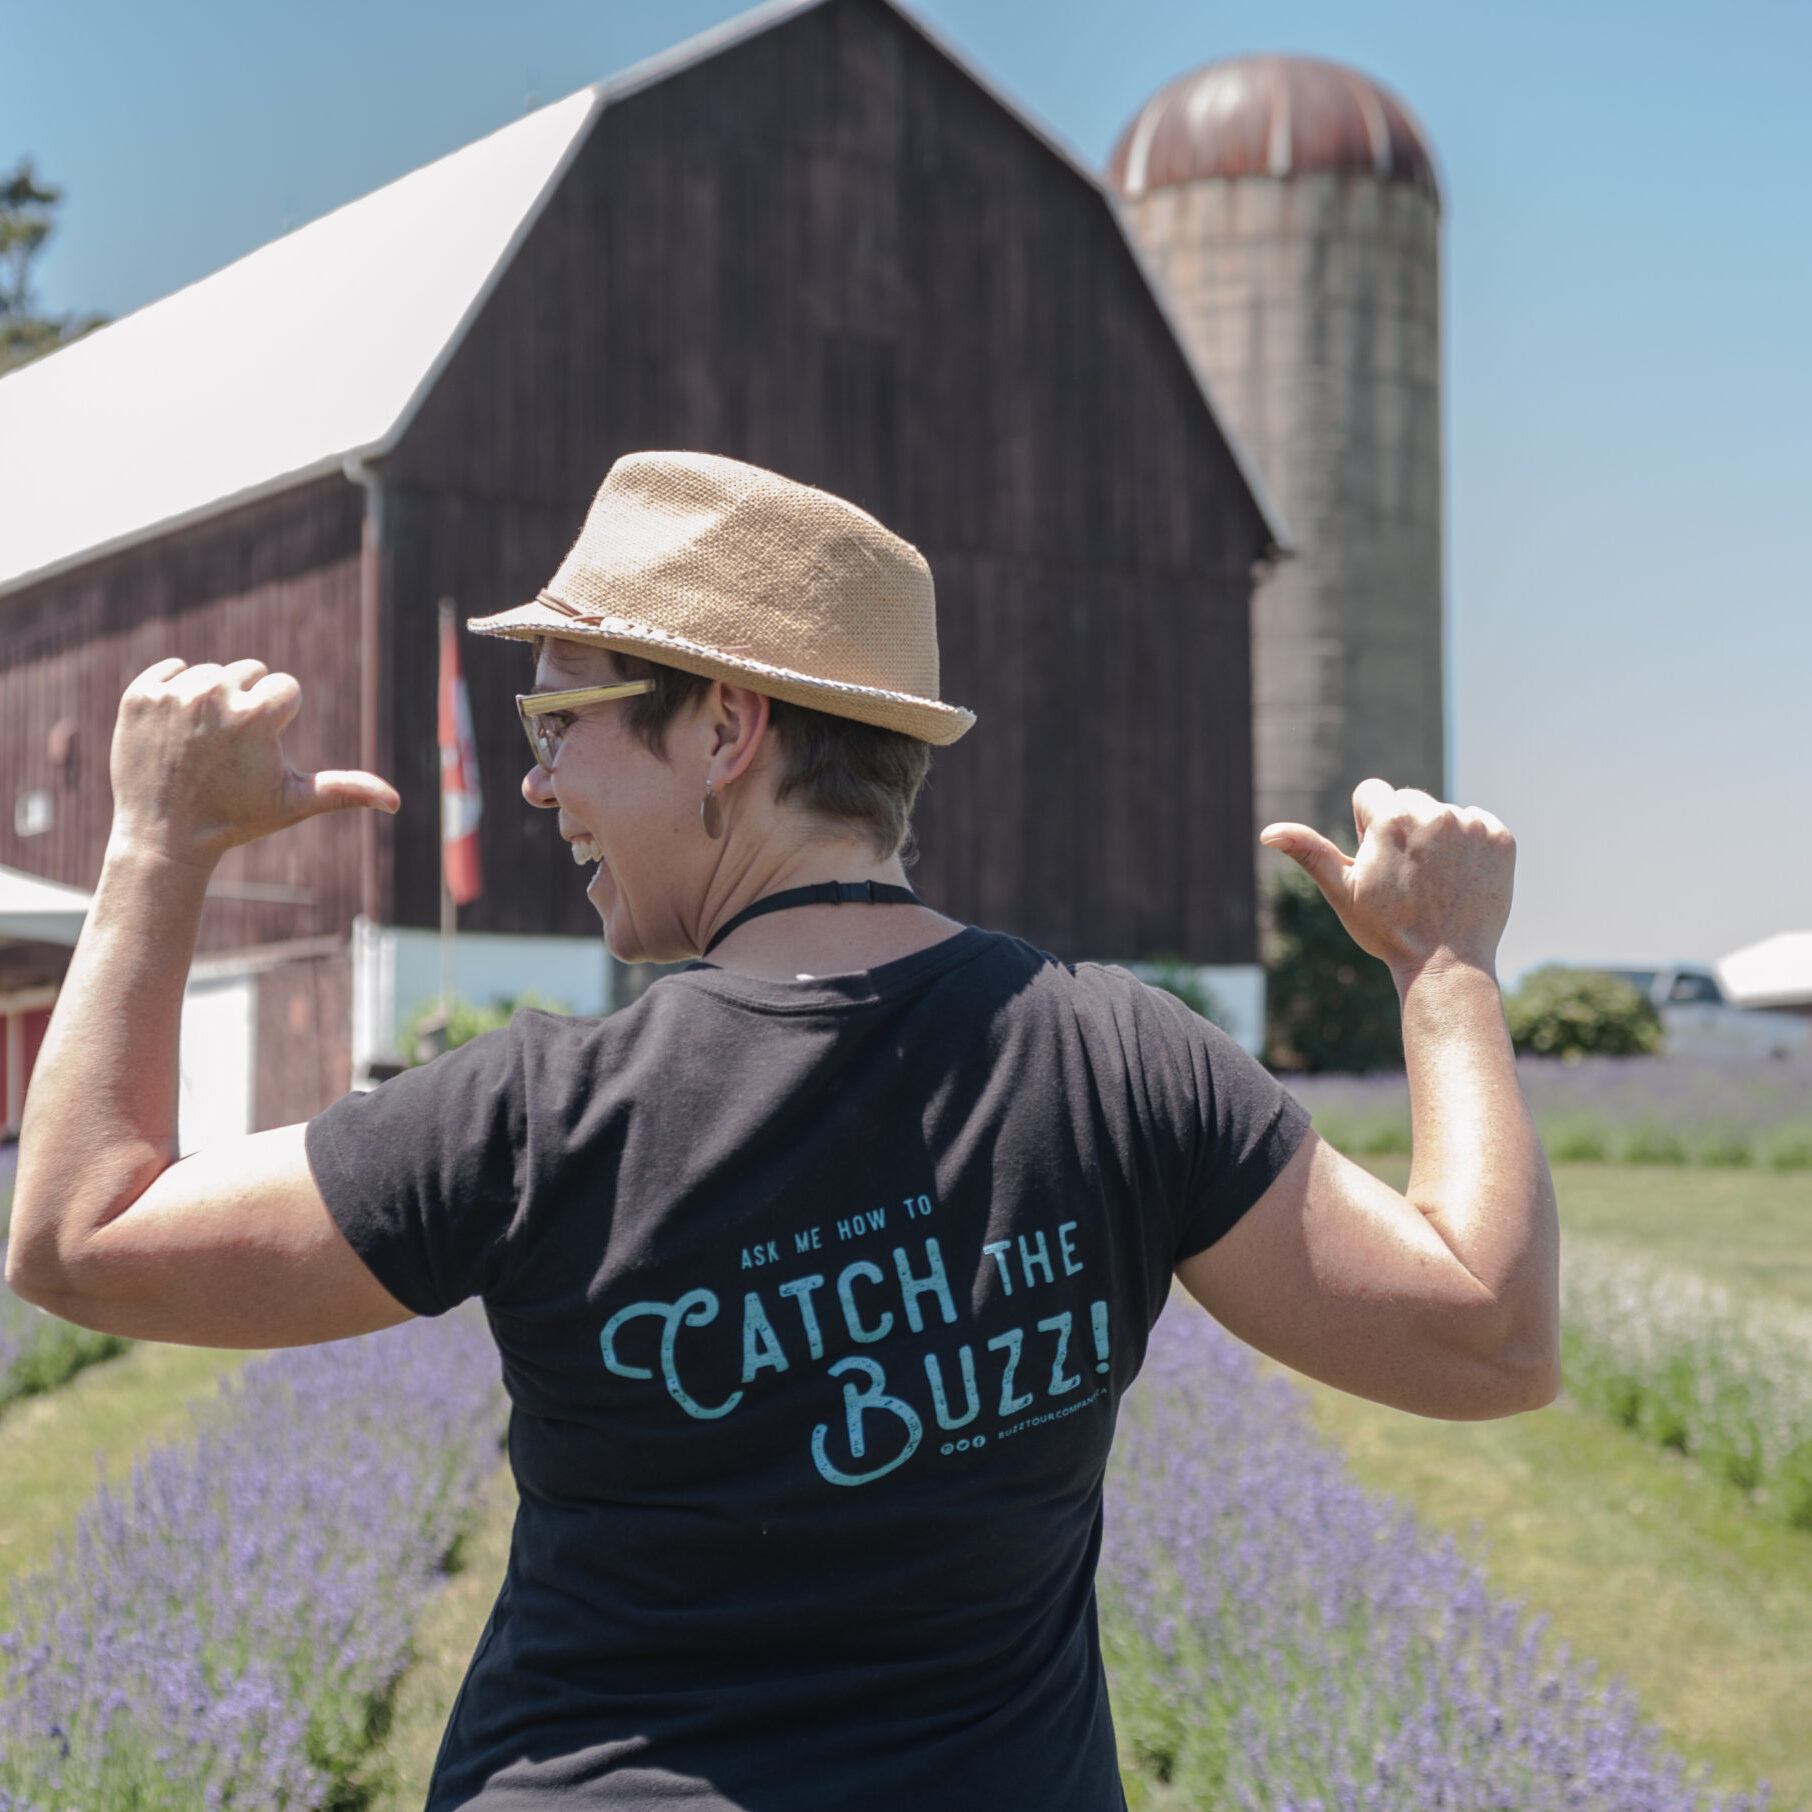 """Tour guide pointing to back of shirt that says """"catch the buzz"""""""